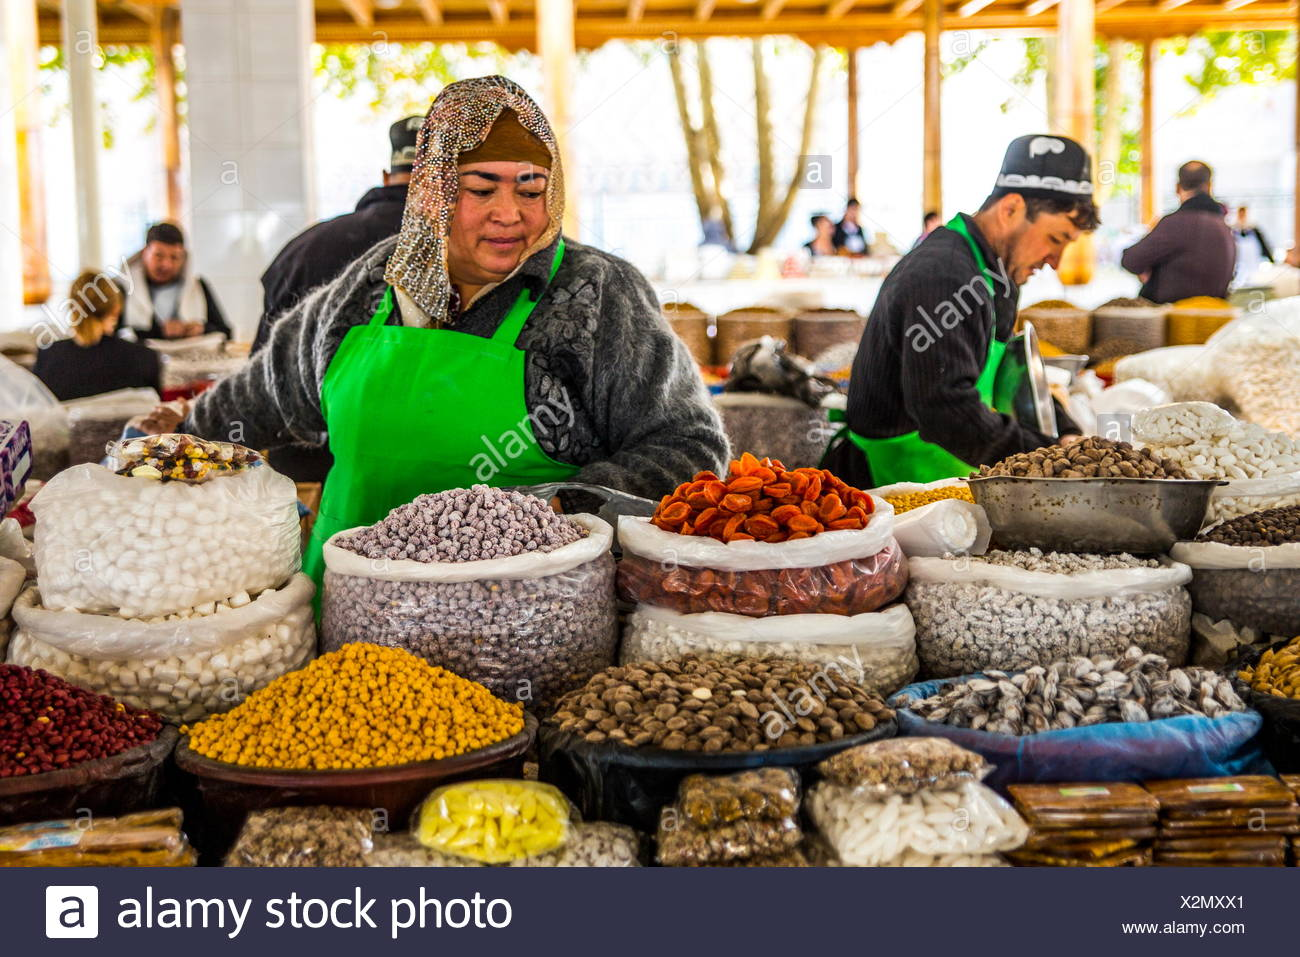 geography / travel, Uzbekistan, Samarkand, markets, Siab Bazaar, Additional-Rights-Clearance-Info-Not-Available - Stock Image